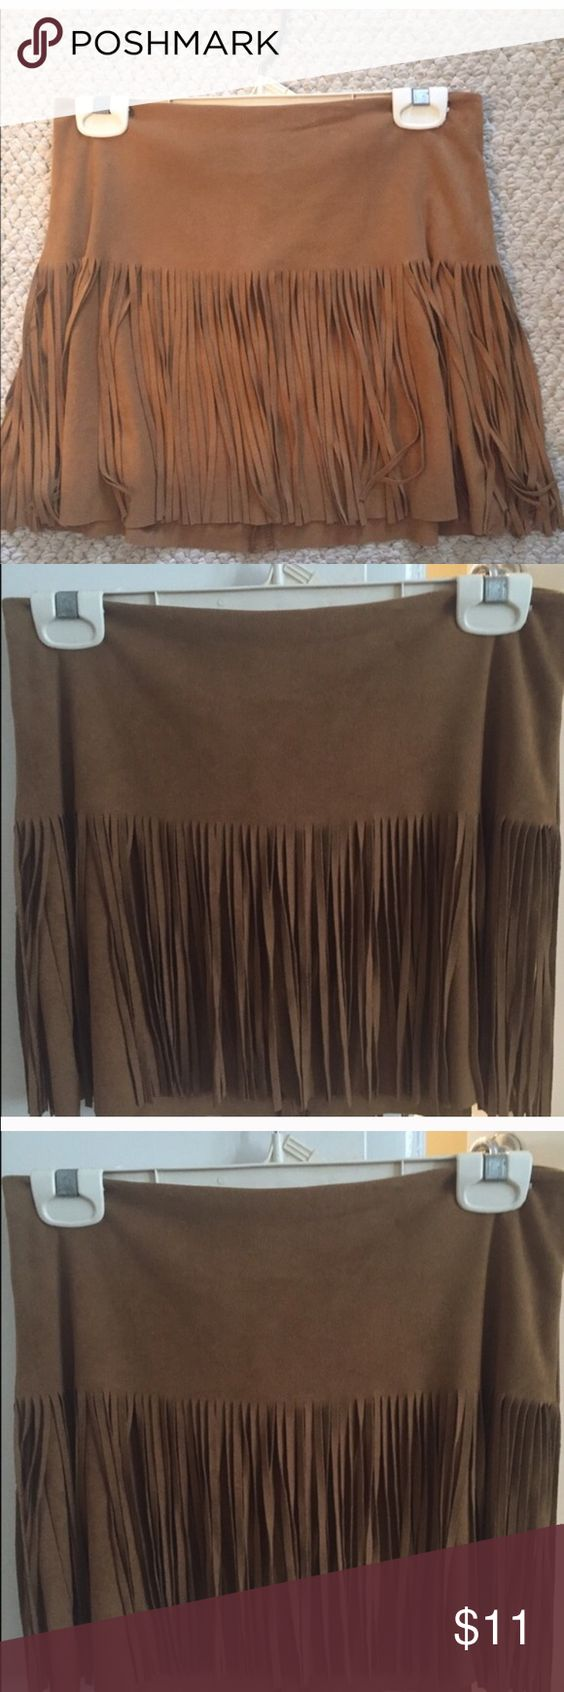 New Woman's Tan Fringe Skirt This is a new never worn tanish brown velvet material fringe skirt very cute. Size 5 Baught from Nordstrom's Department store for 50.00 Skirts